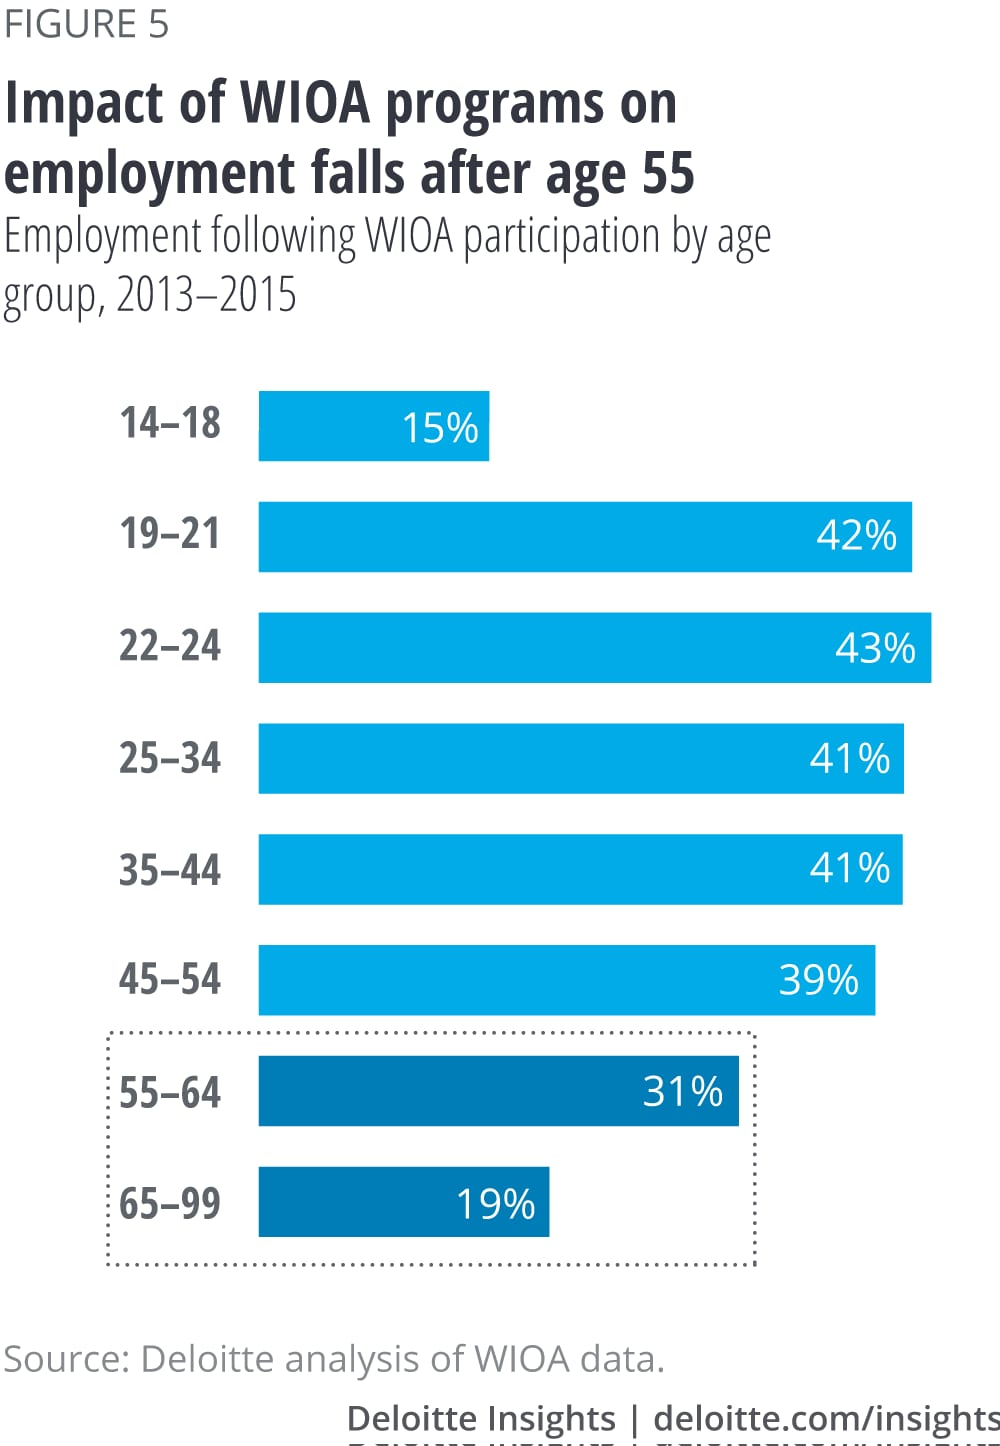 Impact of WIOA programs on employment falls after age 55